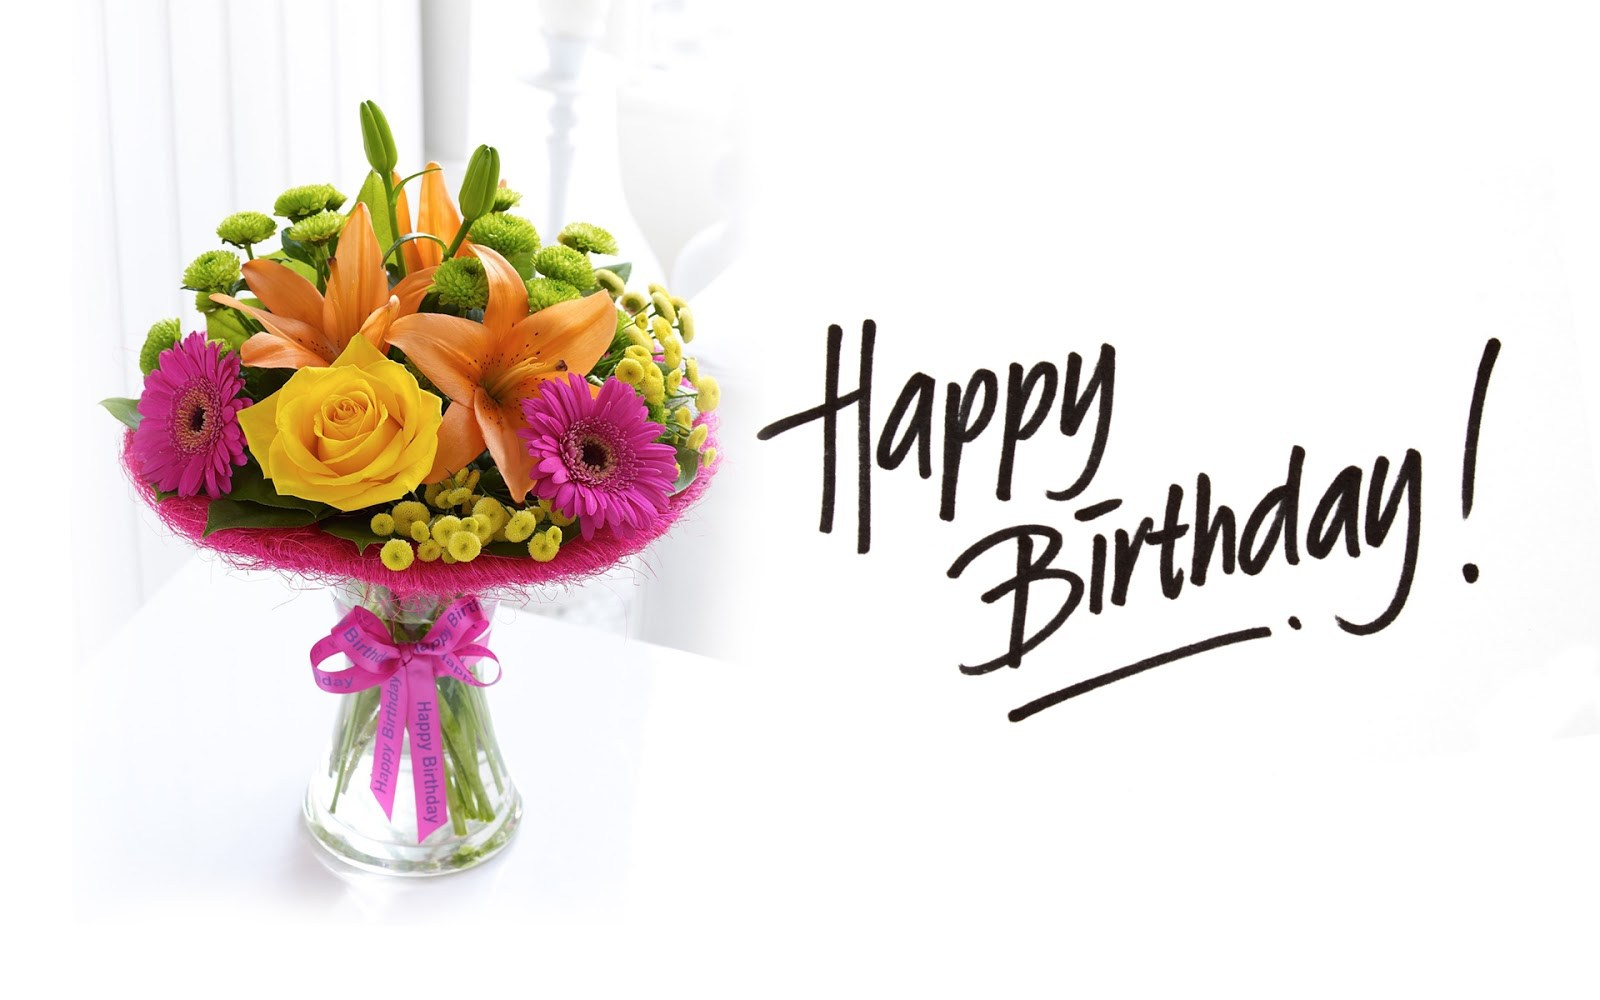 Happy Birthday Wishes To Write In A Card Write Name On Crazy For